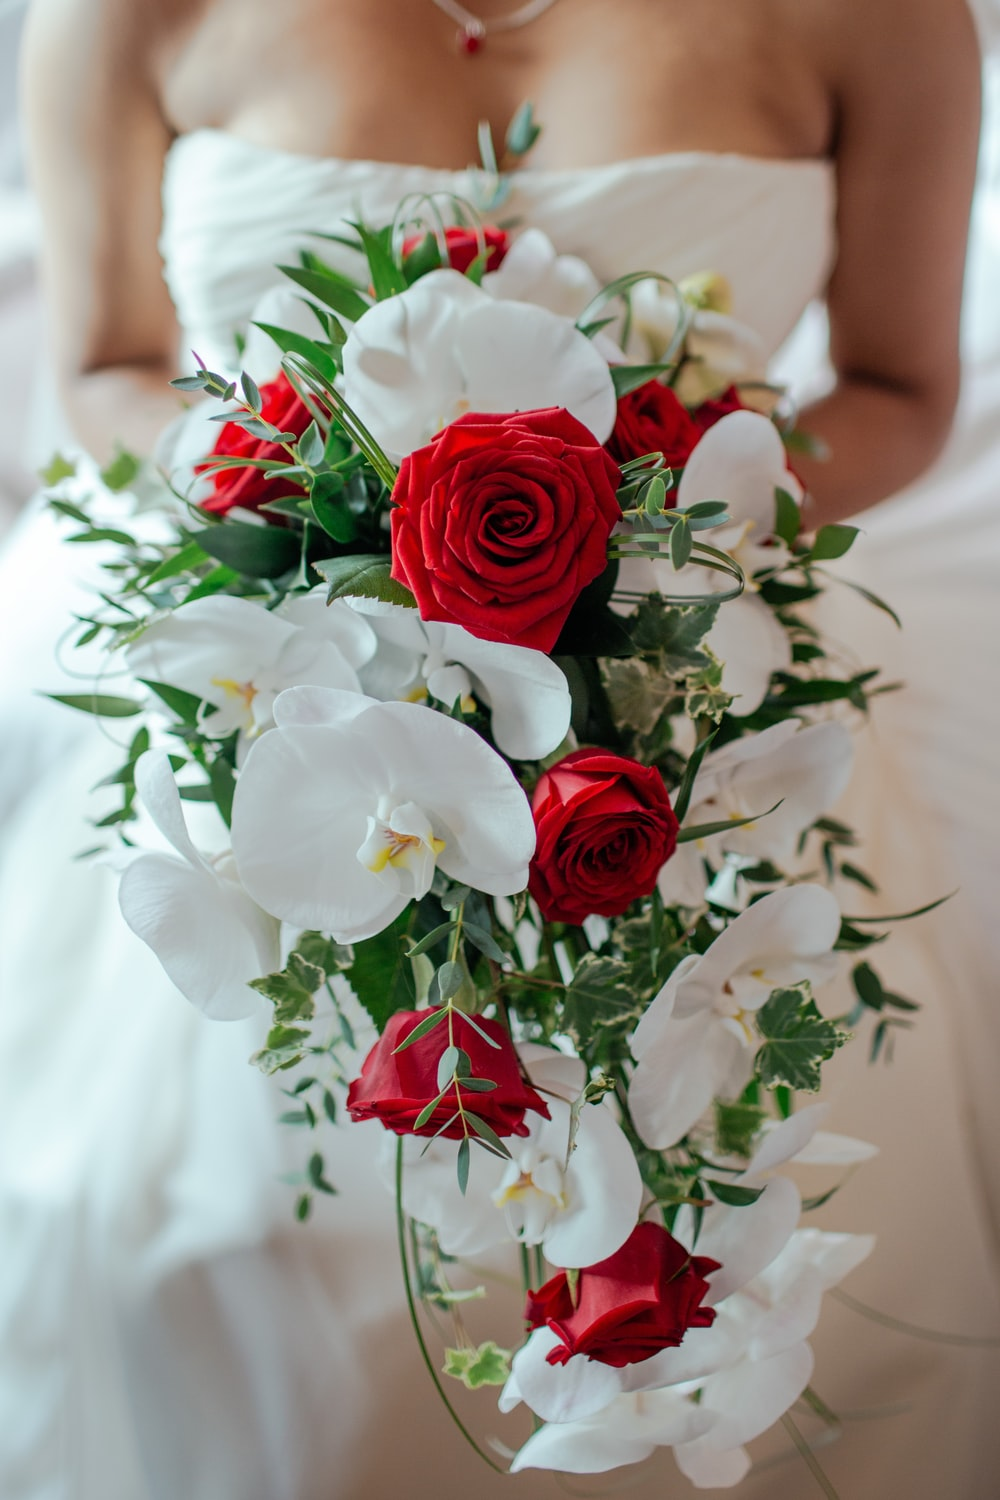 Wedding bouquet pictures download free images on unsplash red rose and white orchid bouquet izmirmasajfo